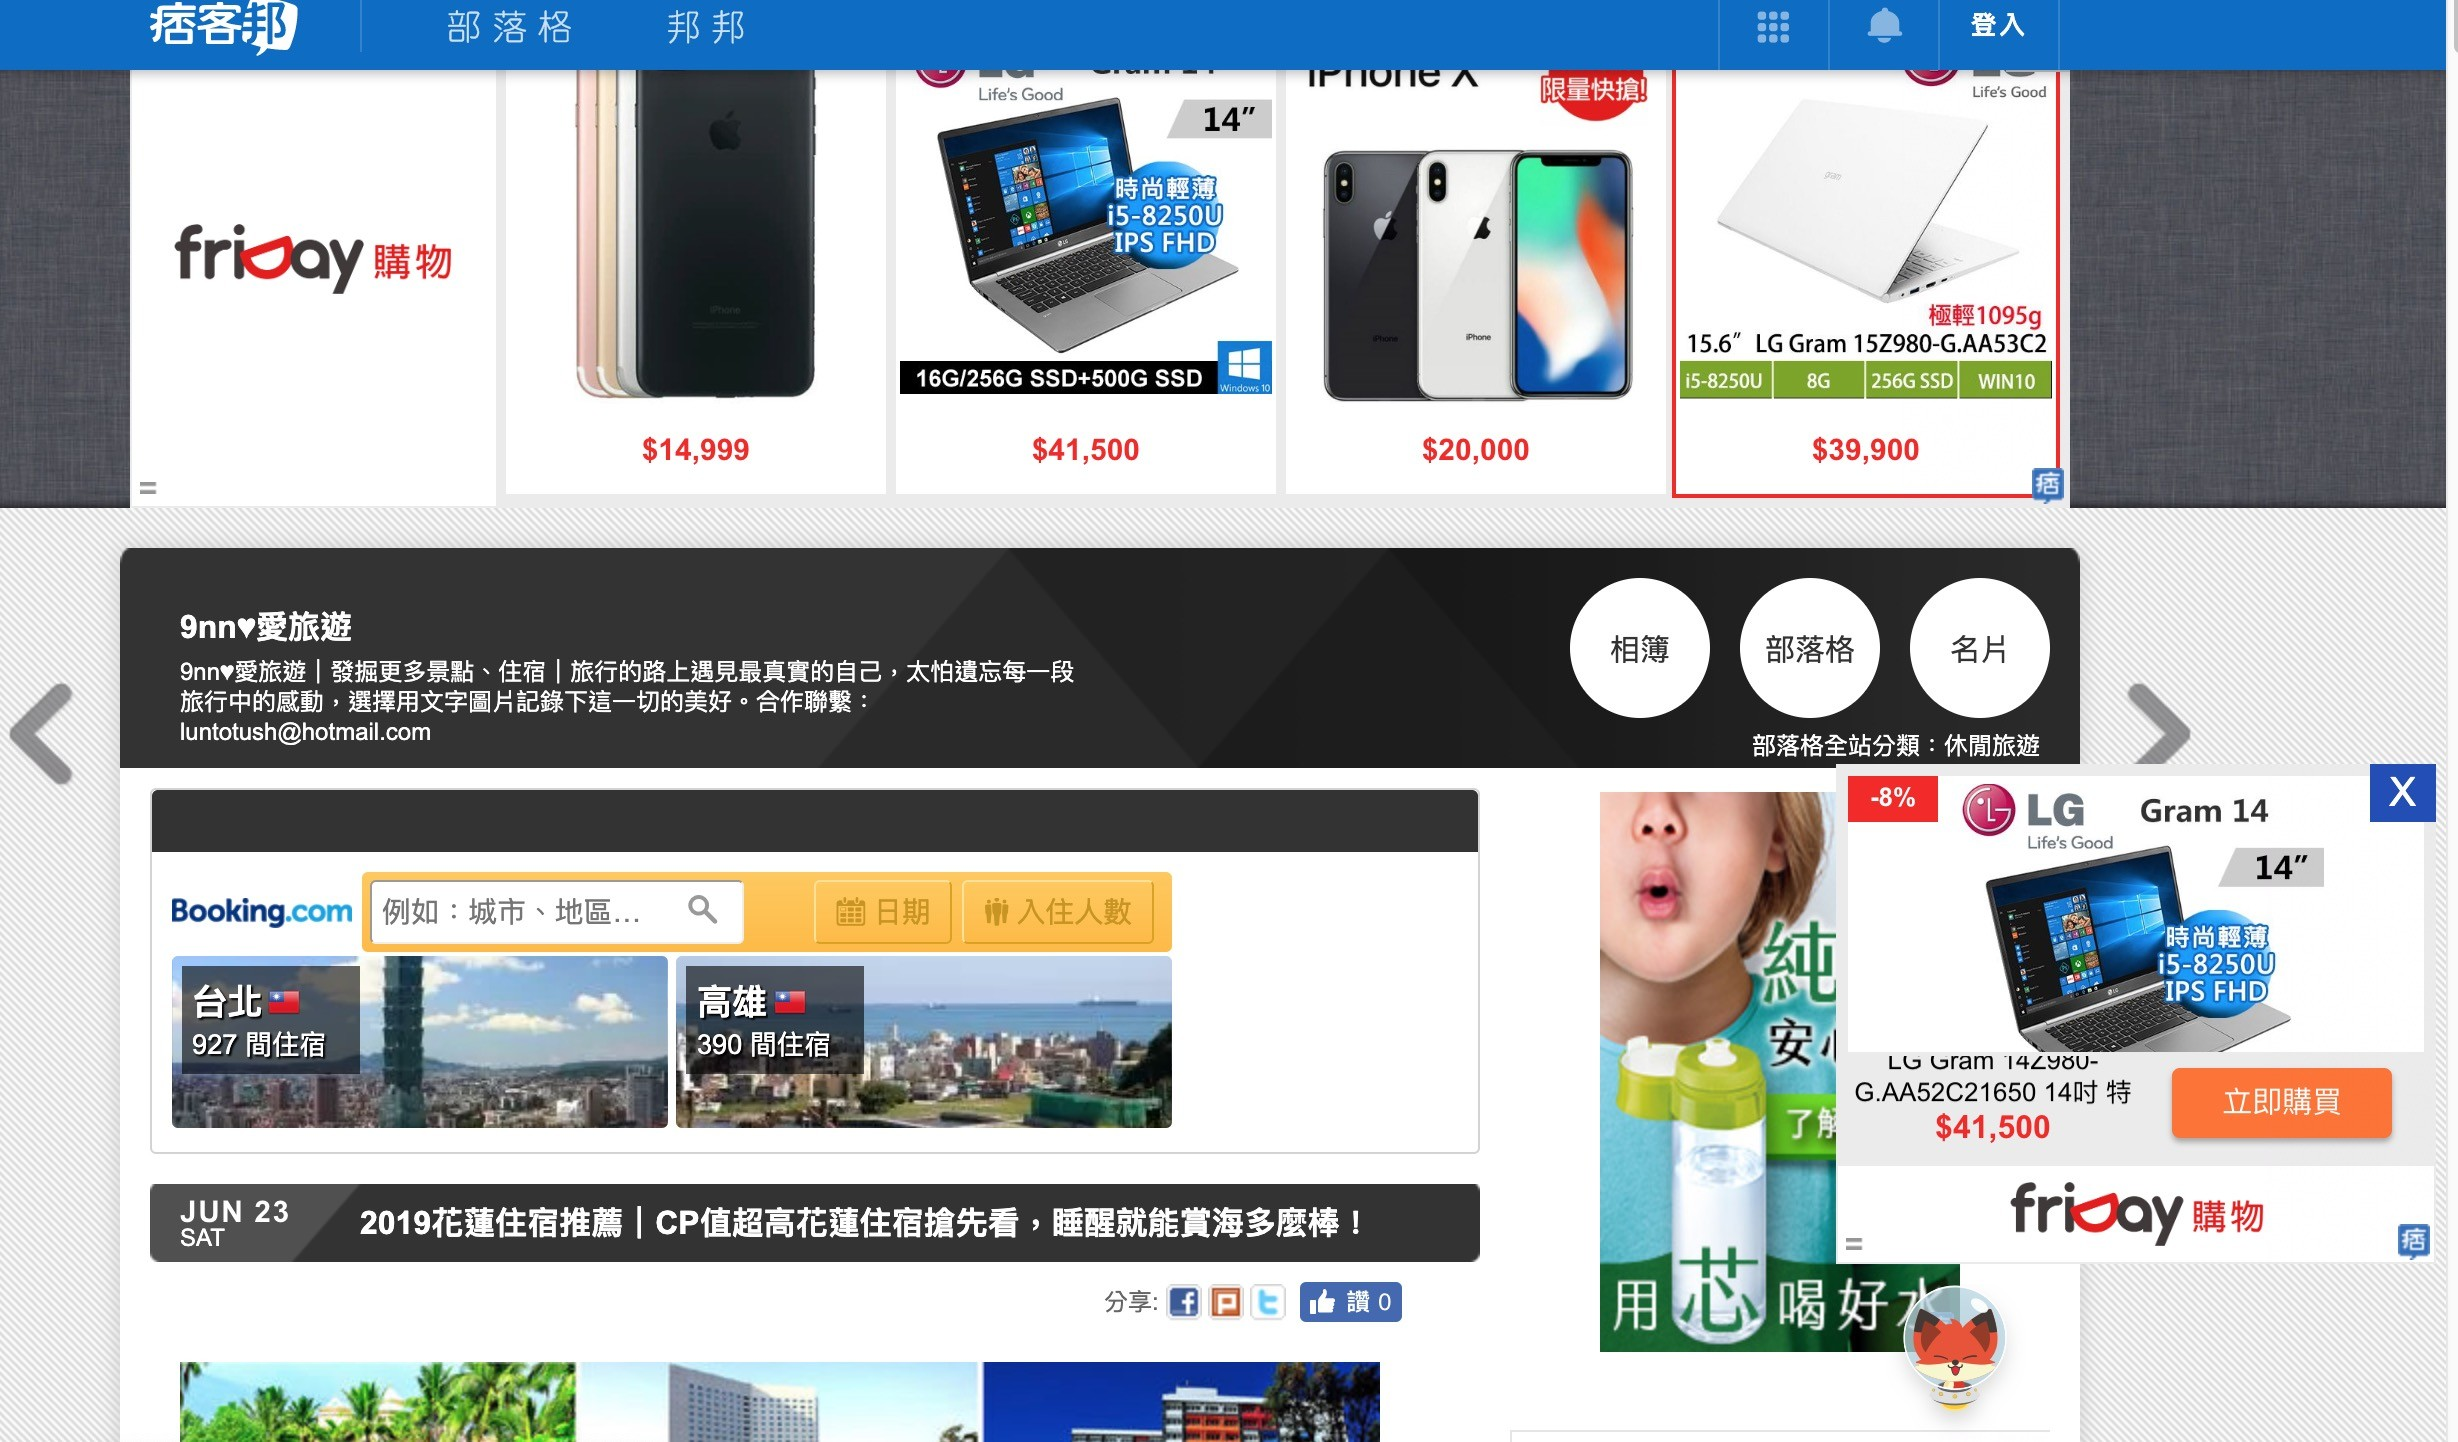 Display advertising, Web page, Font, friDay購物, Advertising, New media, Product design, Product, Gadget, Design, friday 購物, Product, Web page, Website, Display advertising, Advertising, Technology, Screenshot, Multimedia, Font, Electronic device